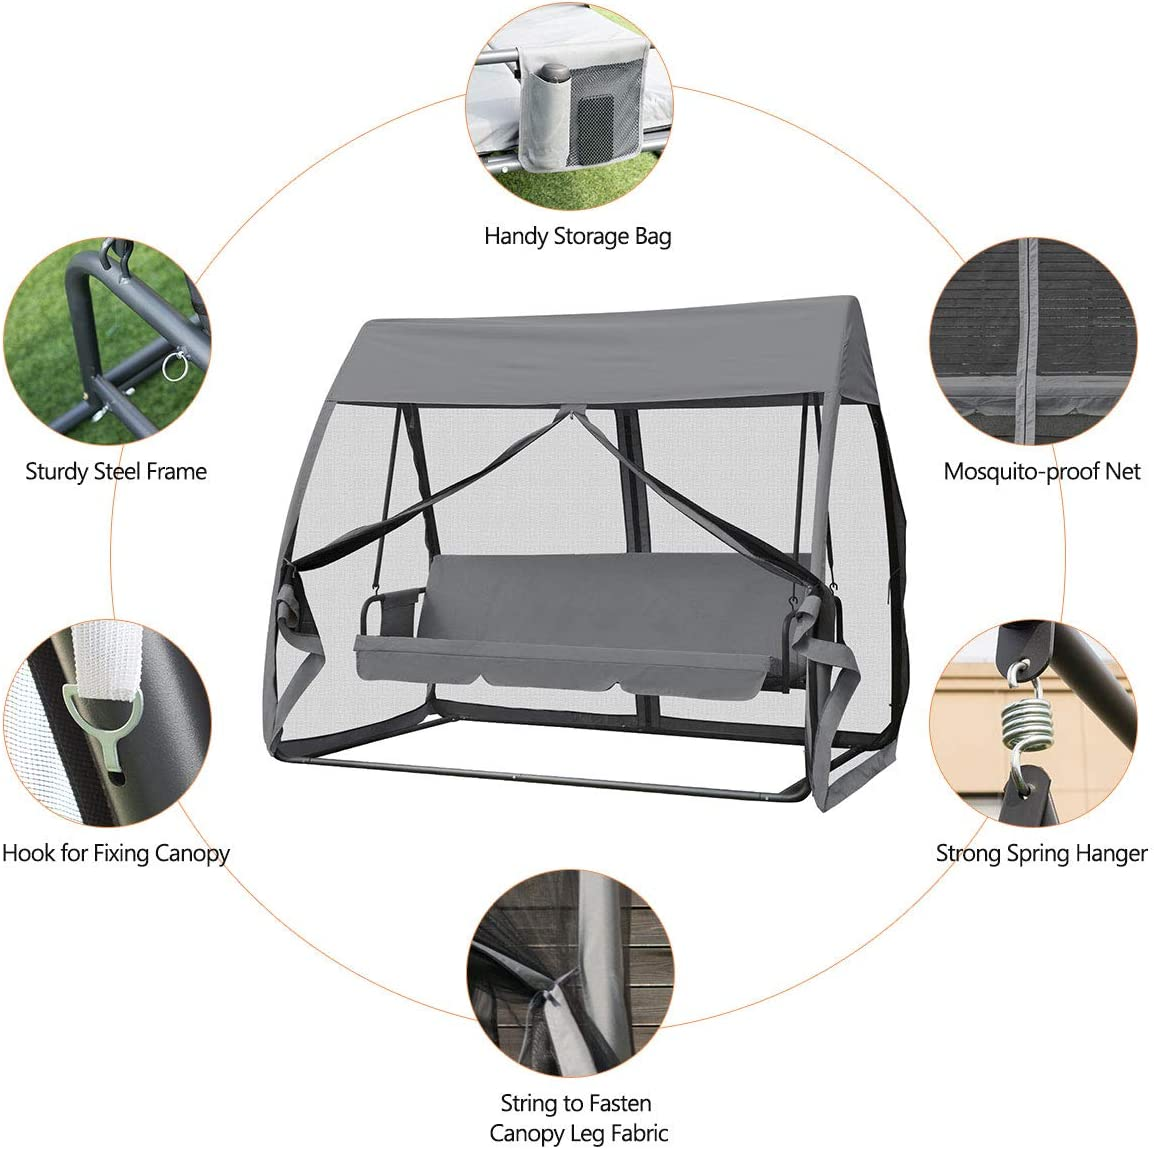 COSTWAY 3 Seat Garden Swing Chair with Cover Tent Water Resistant Roof /& Mosquito Net Color 1 2 in 1 Outdoor Rocking Hammock Bench Patio Swing Bed for Porch Garden Backyard Pool Side